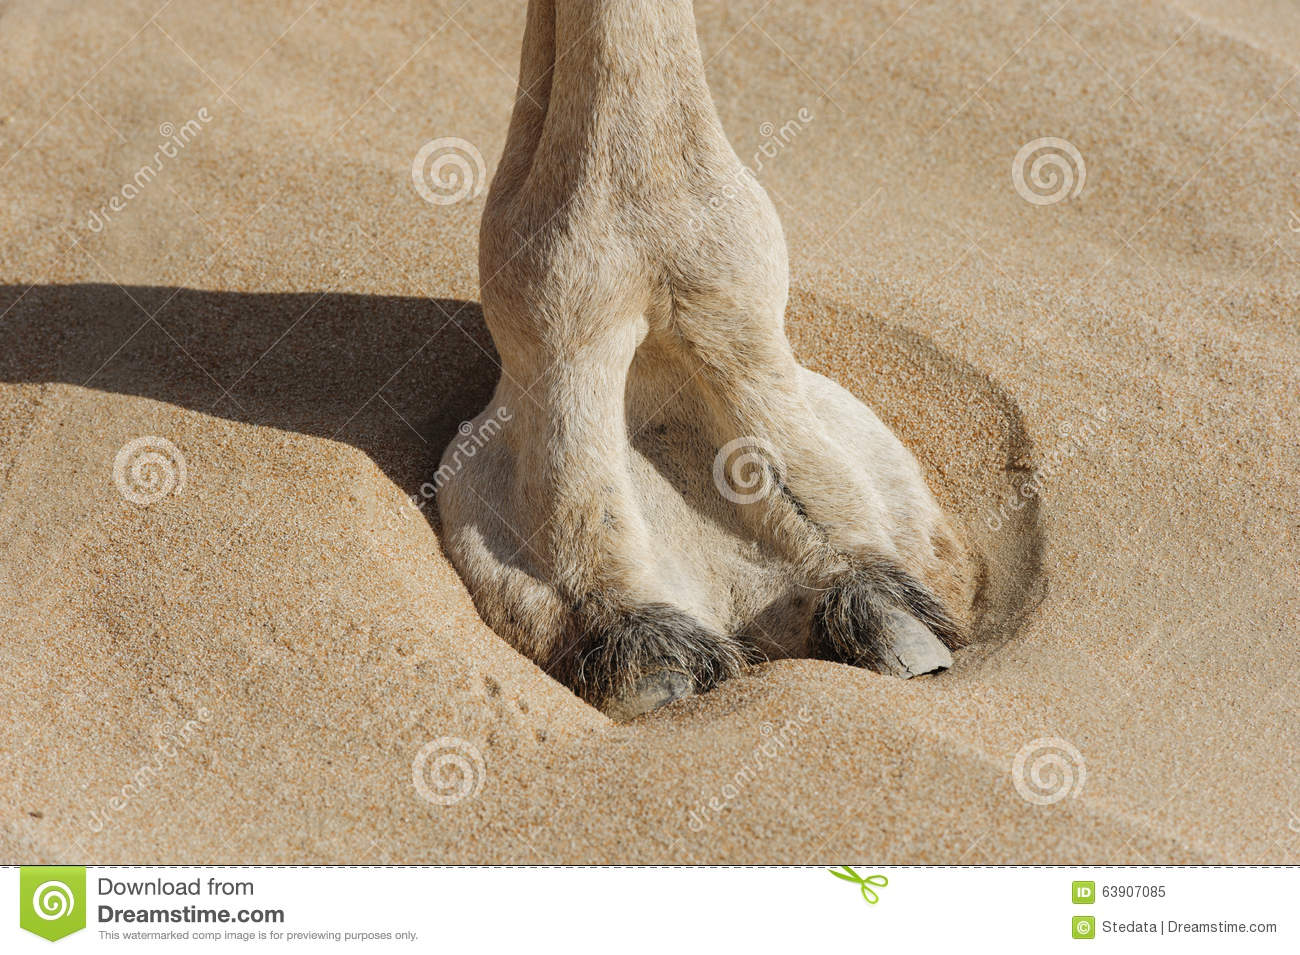 Image result for camel feet